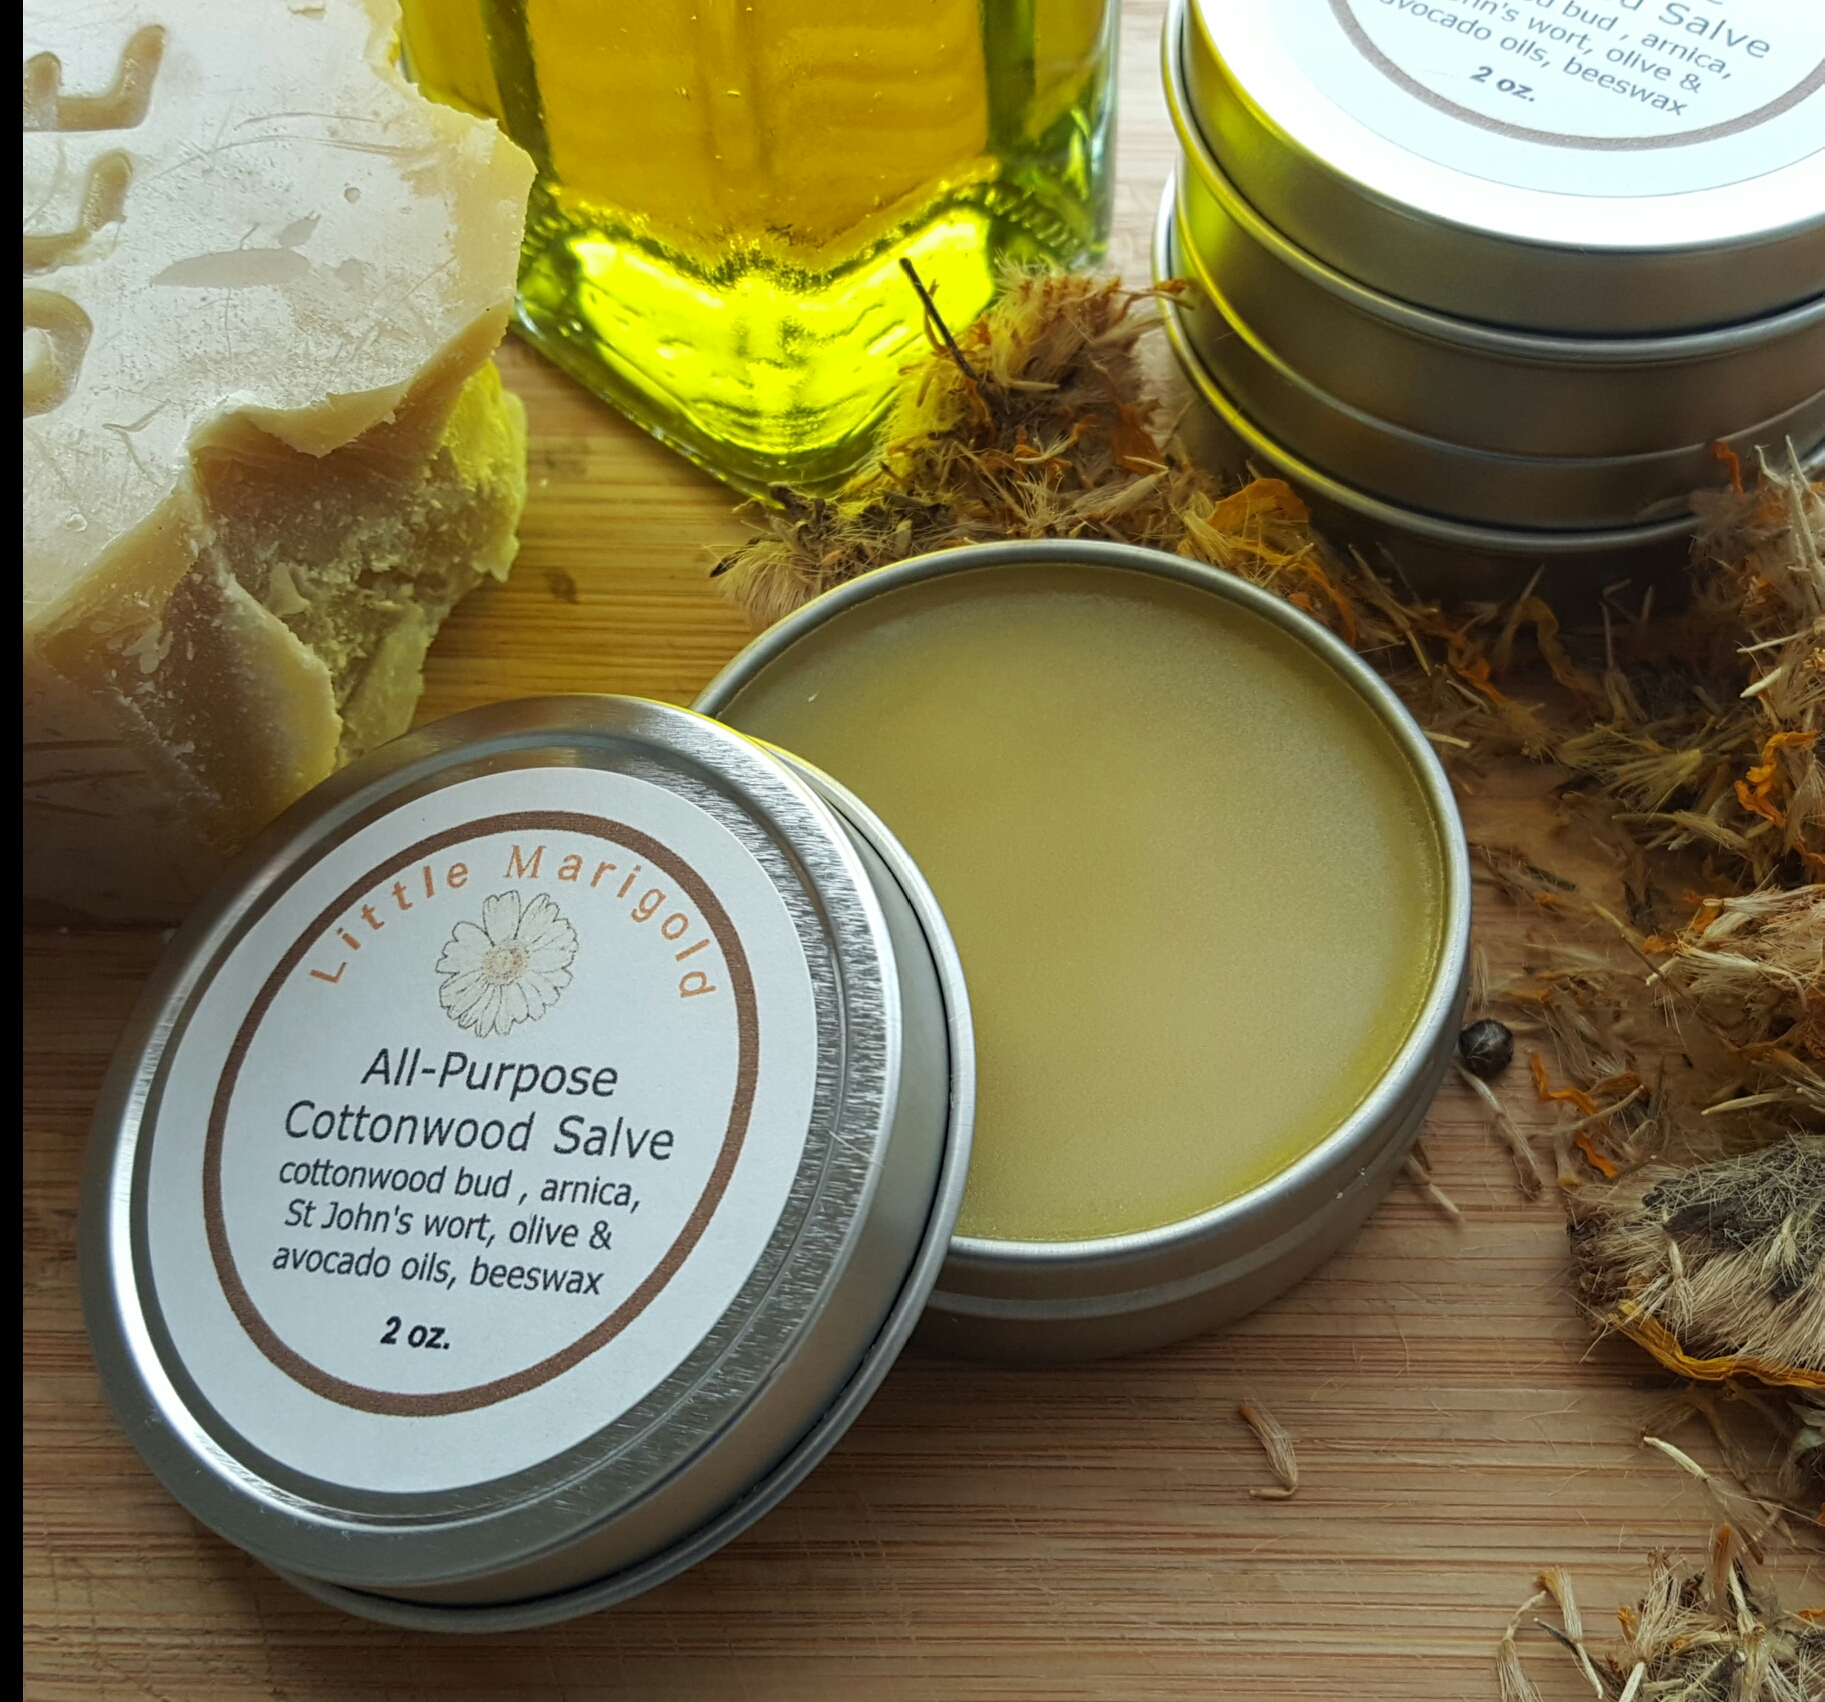 tin of cottonwood bud salve